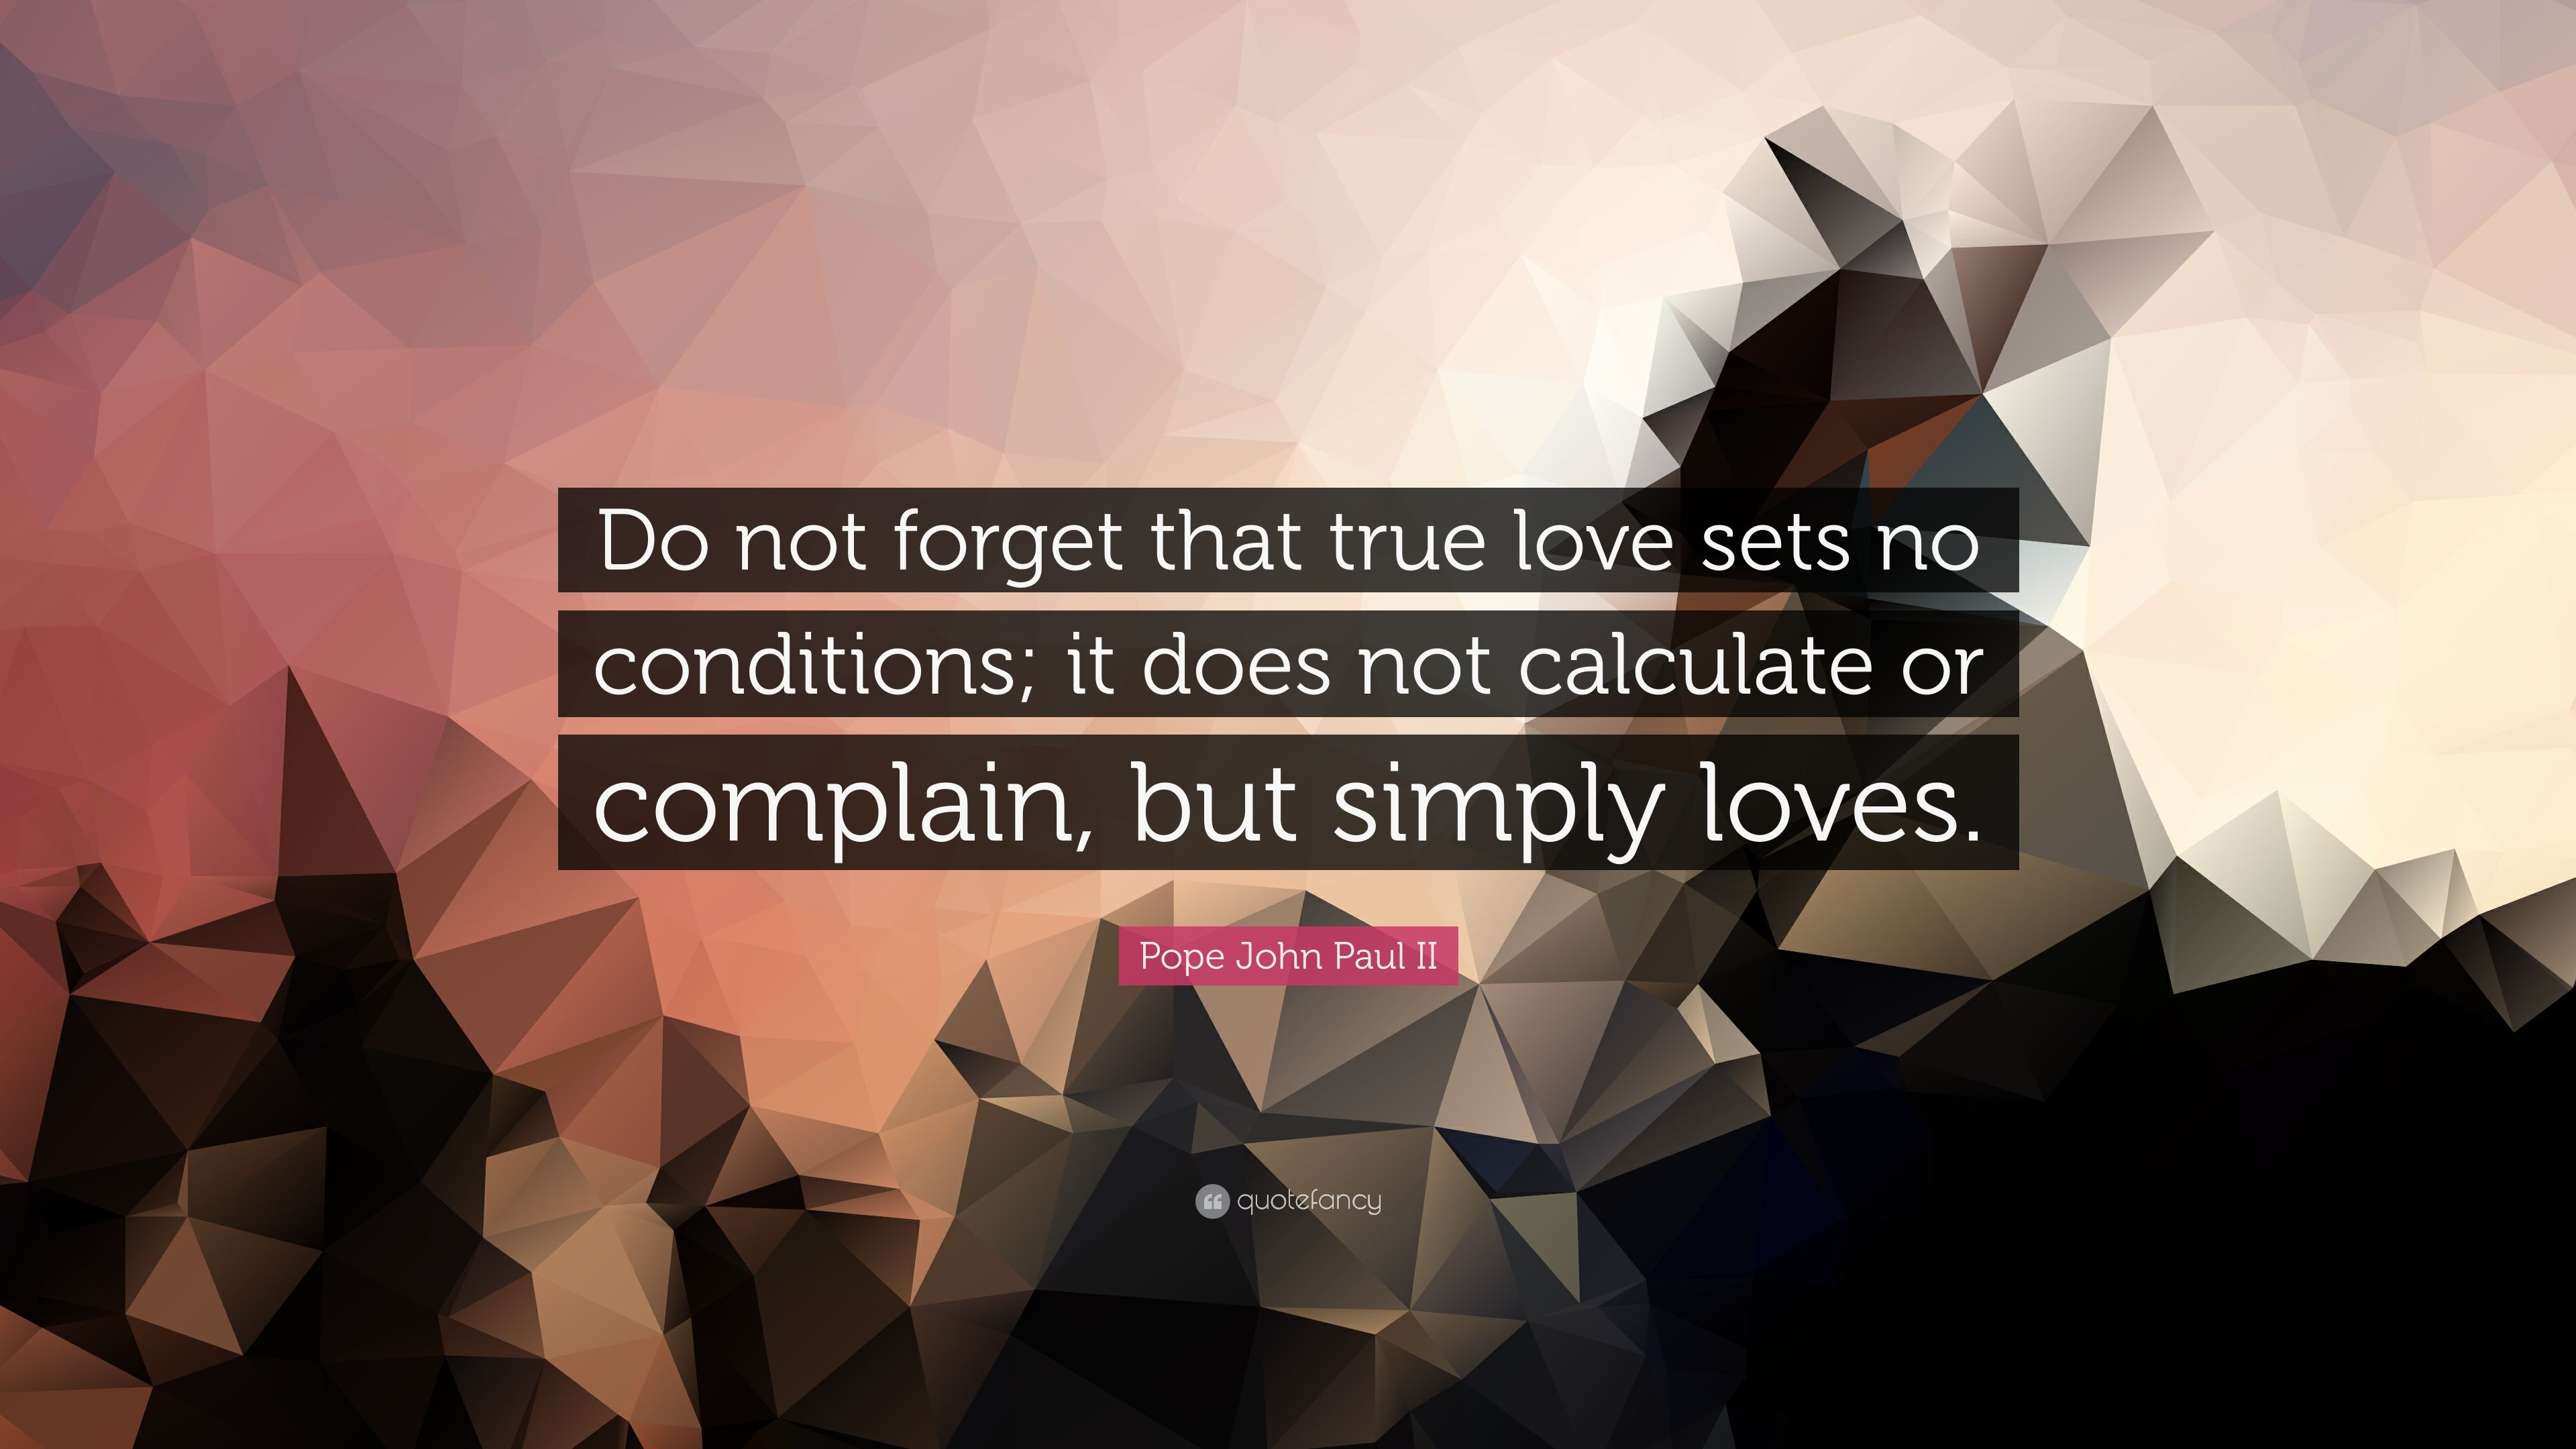 how to forget true love